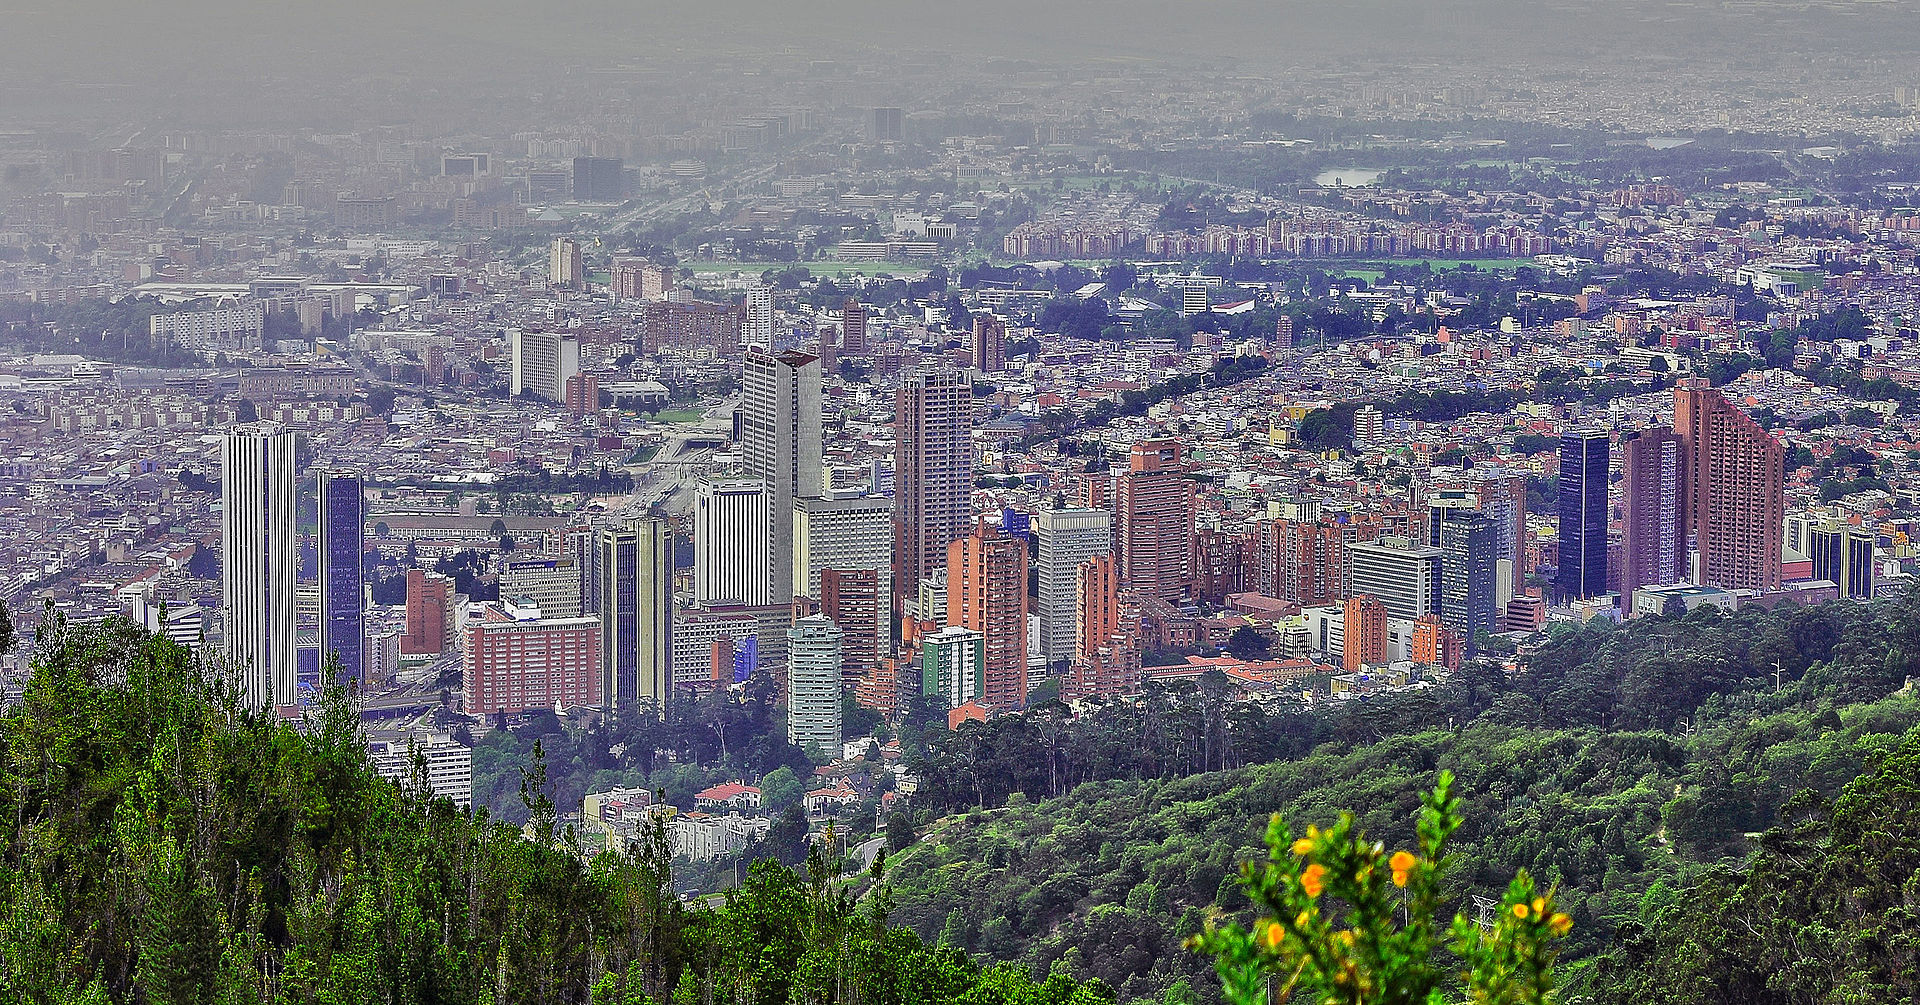 Bogotá from the eastern mountains. Picture by Omar Monroy